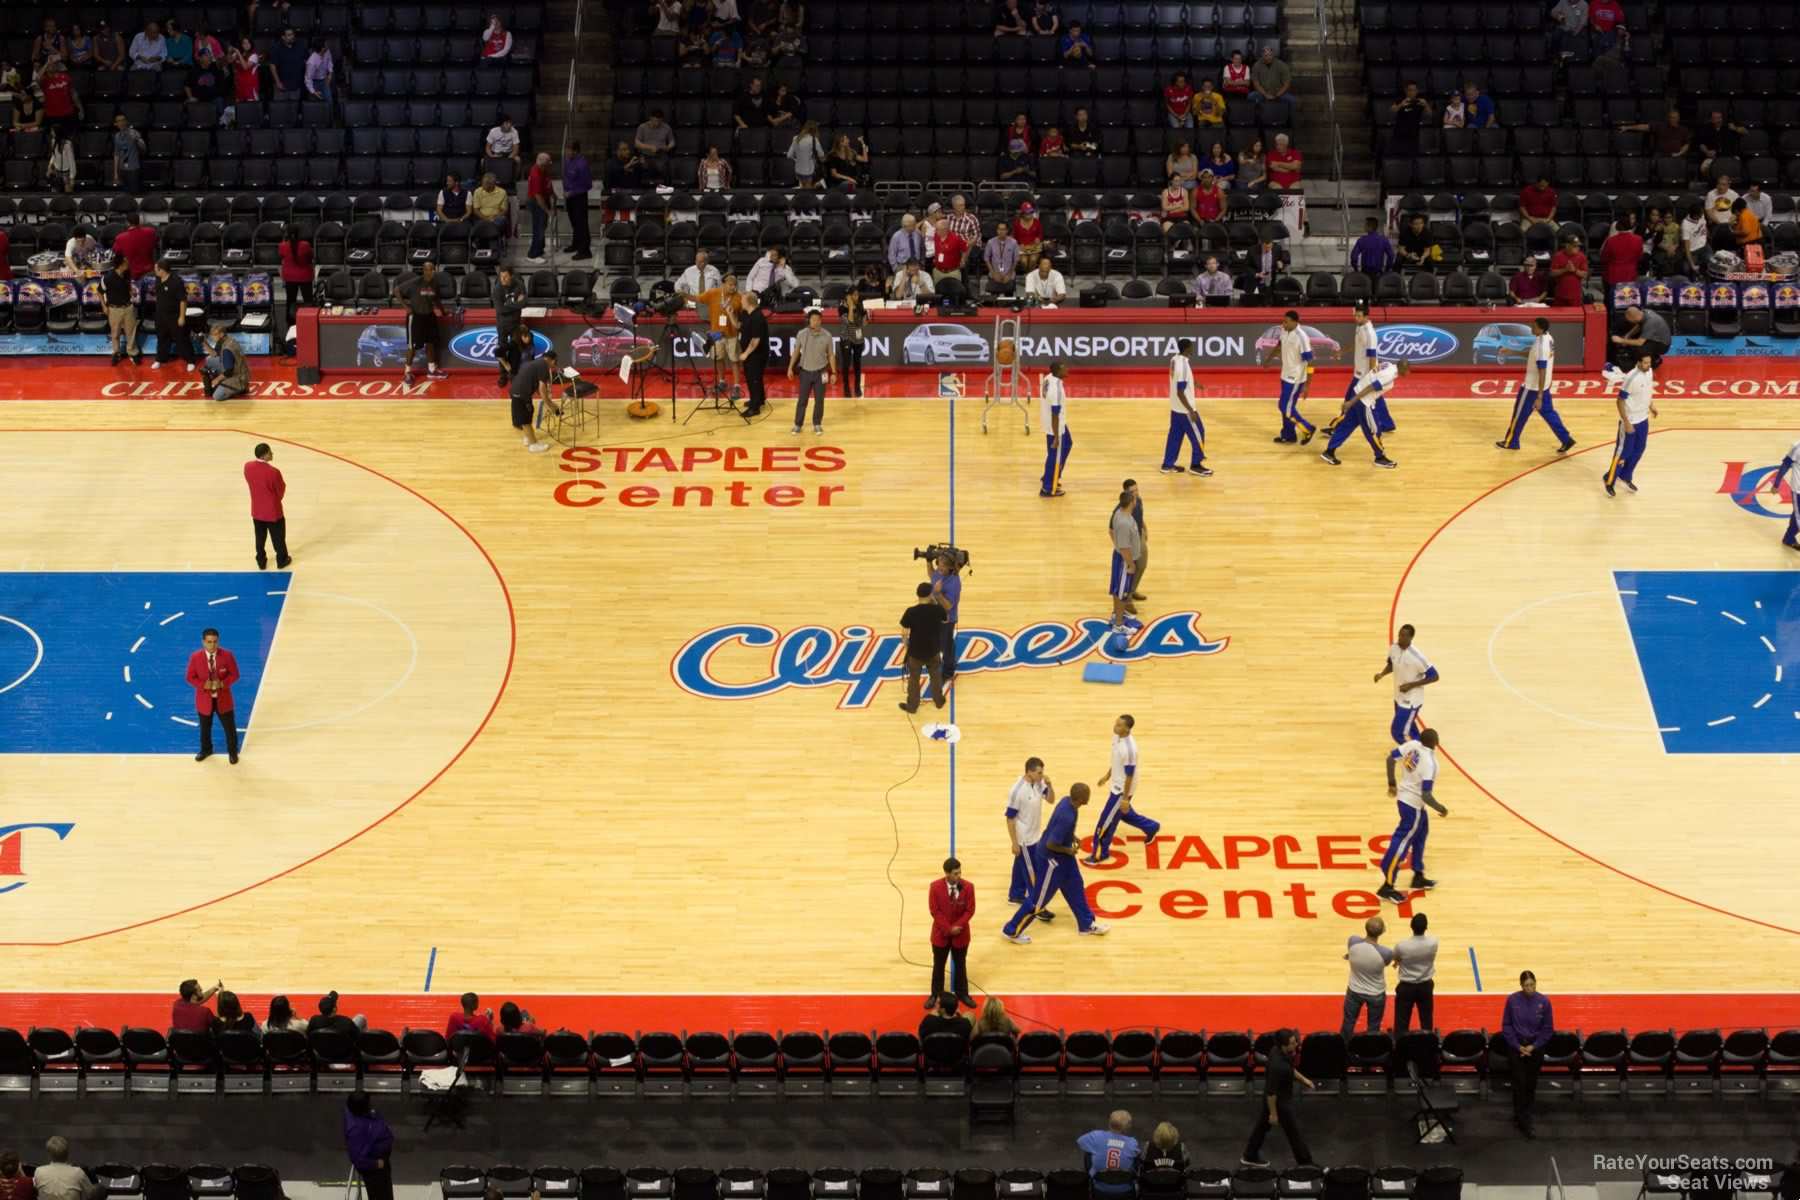 Staples Center Section 318 - Clippers/Lakers ...